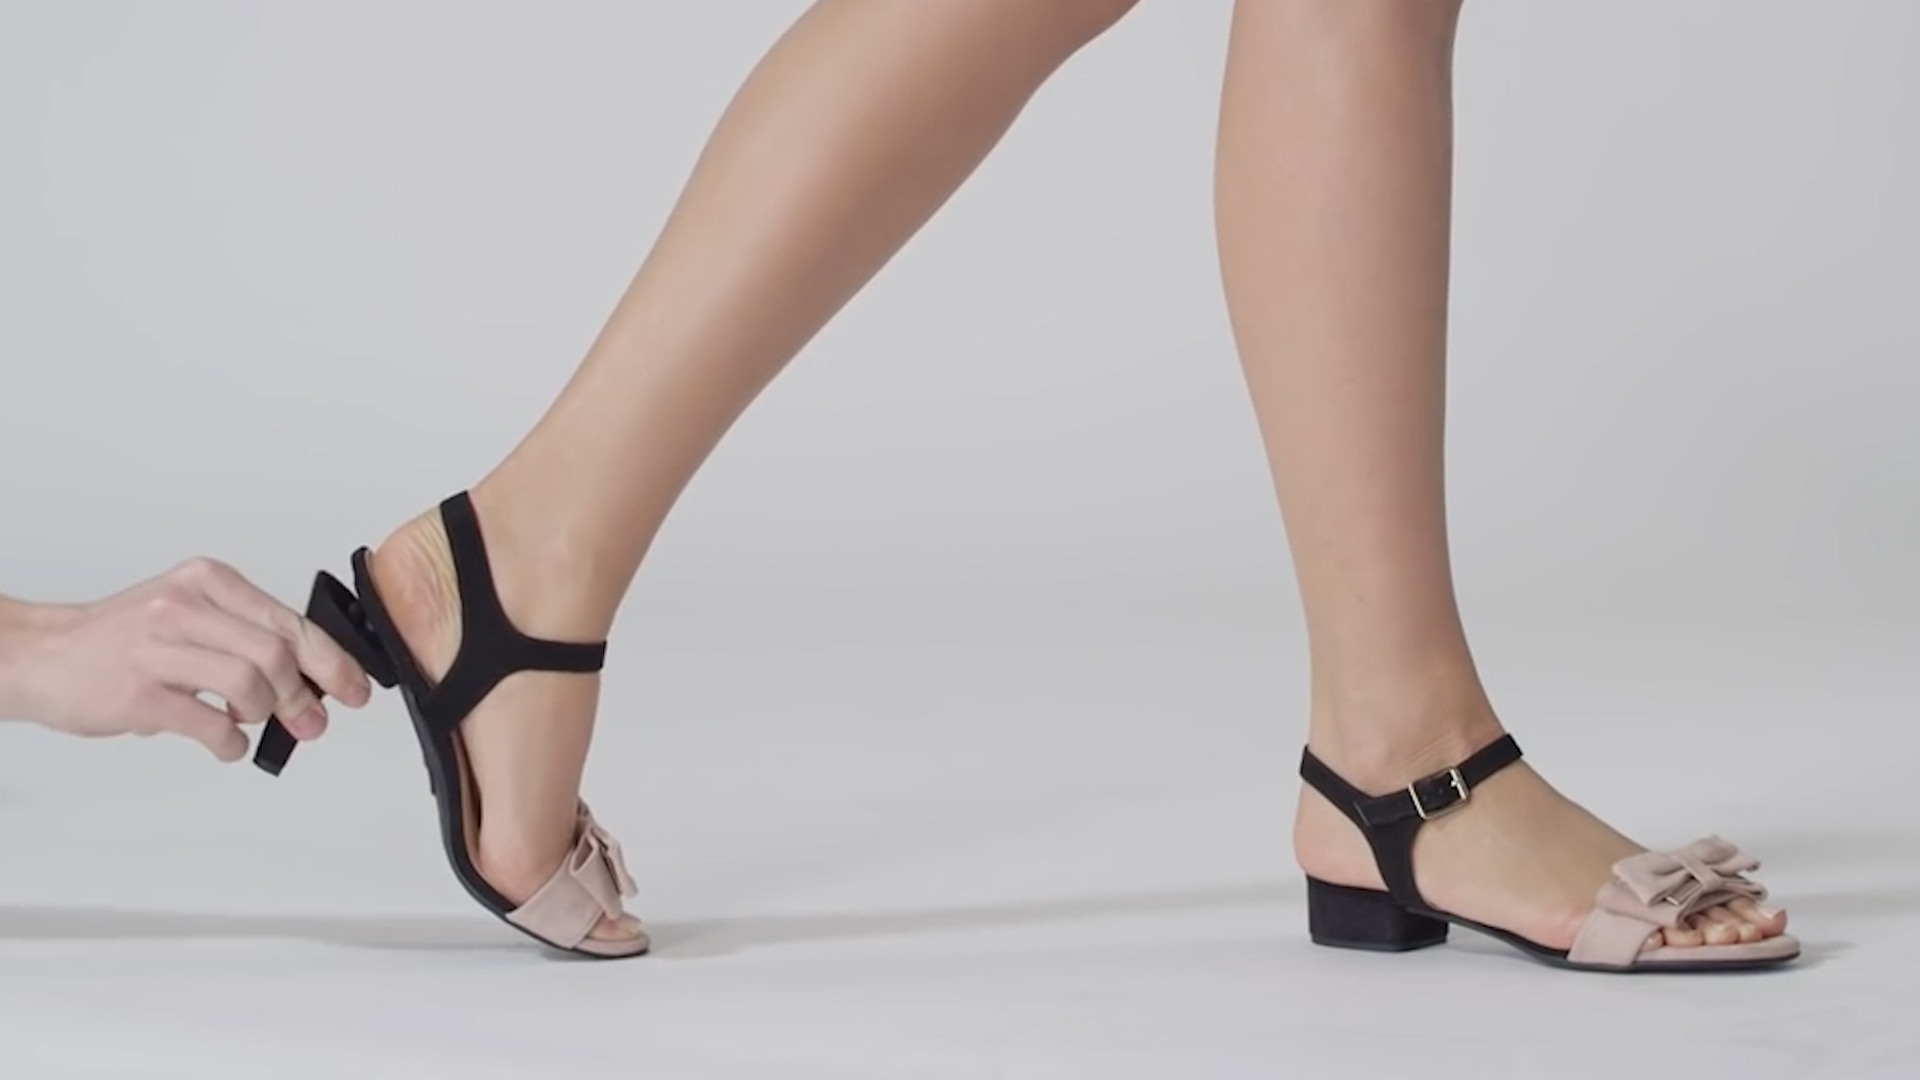 e4cd56a613d3 Swap flats for stilettos in seconds with these interchangeable heels